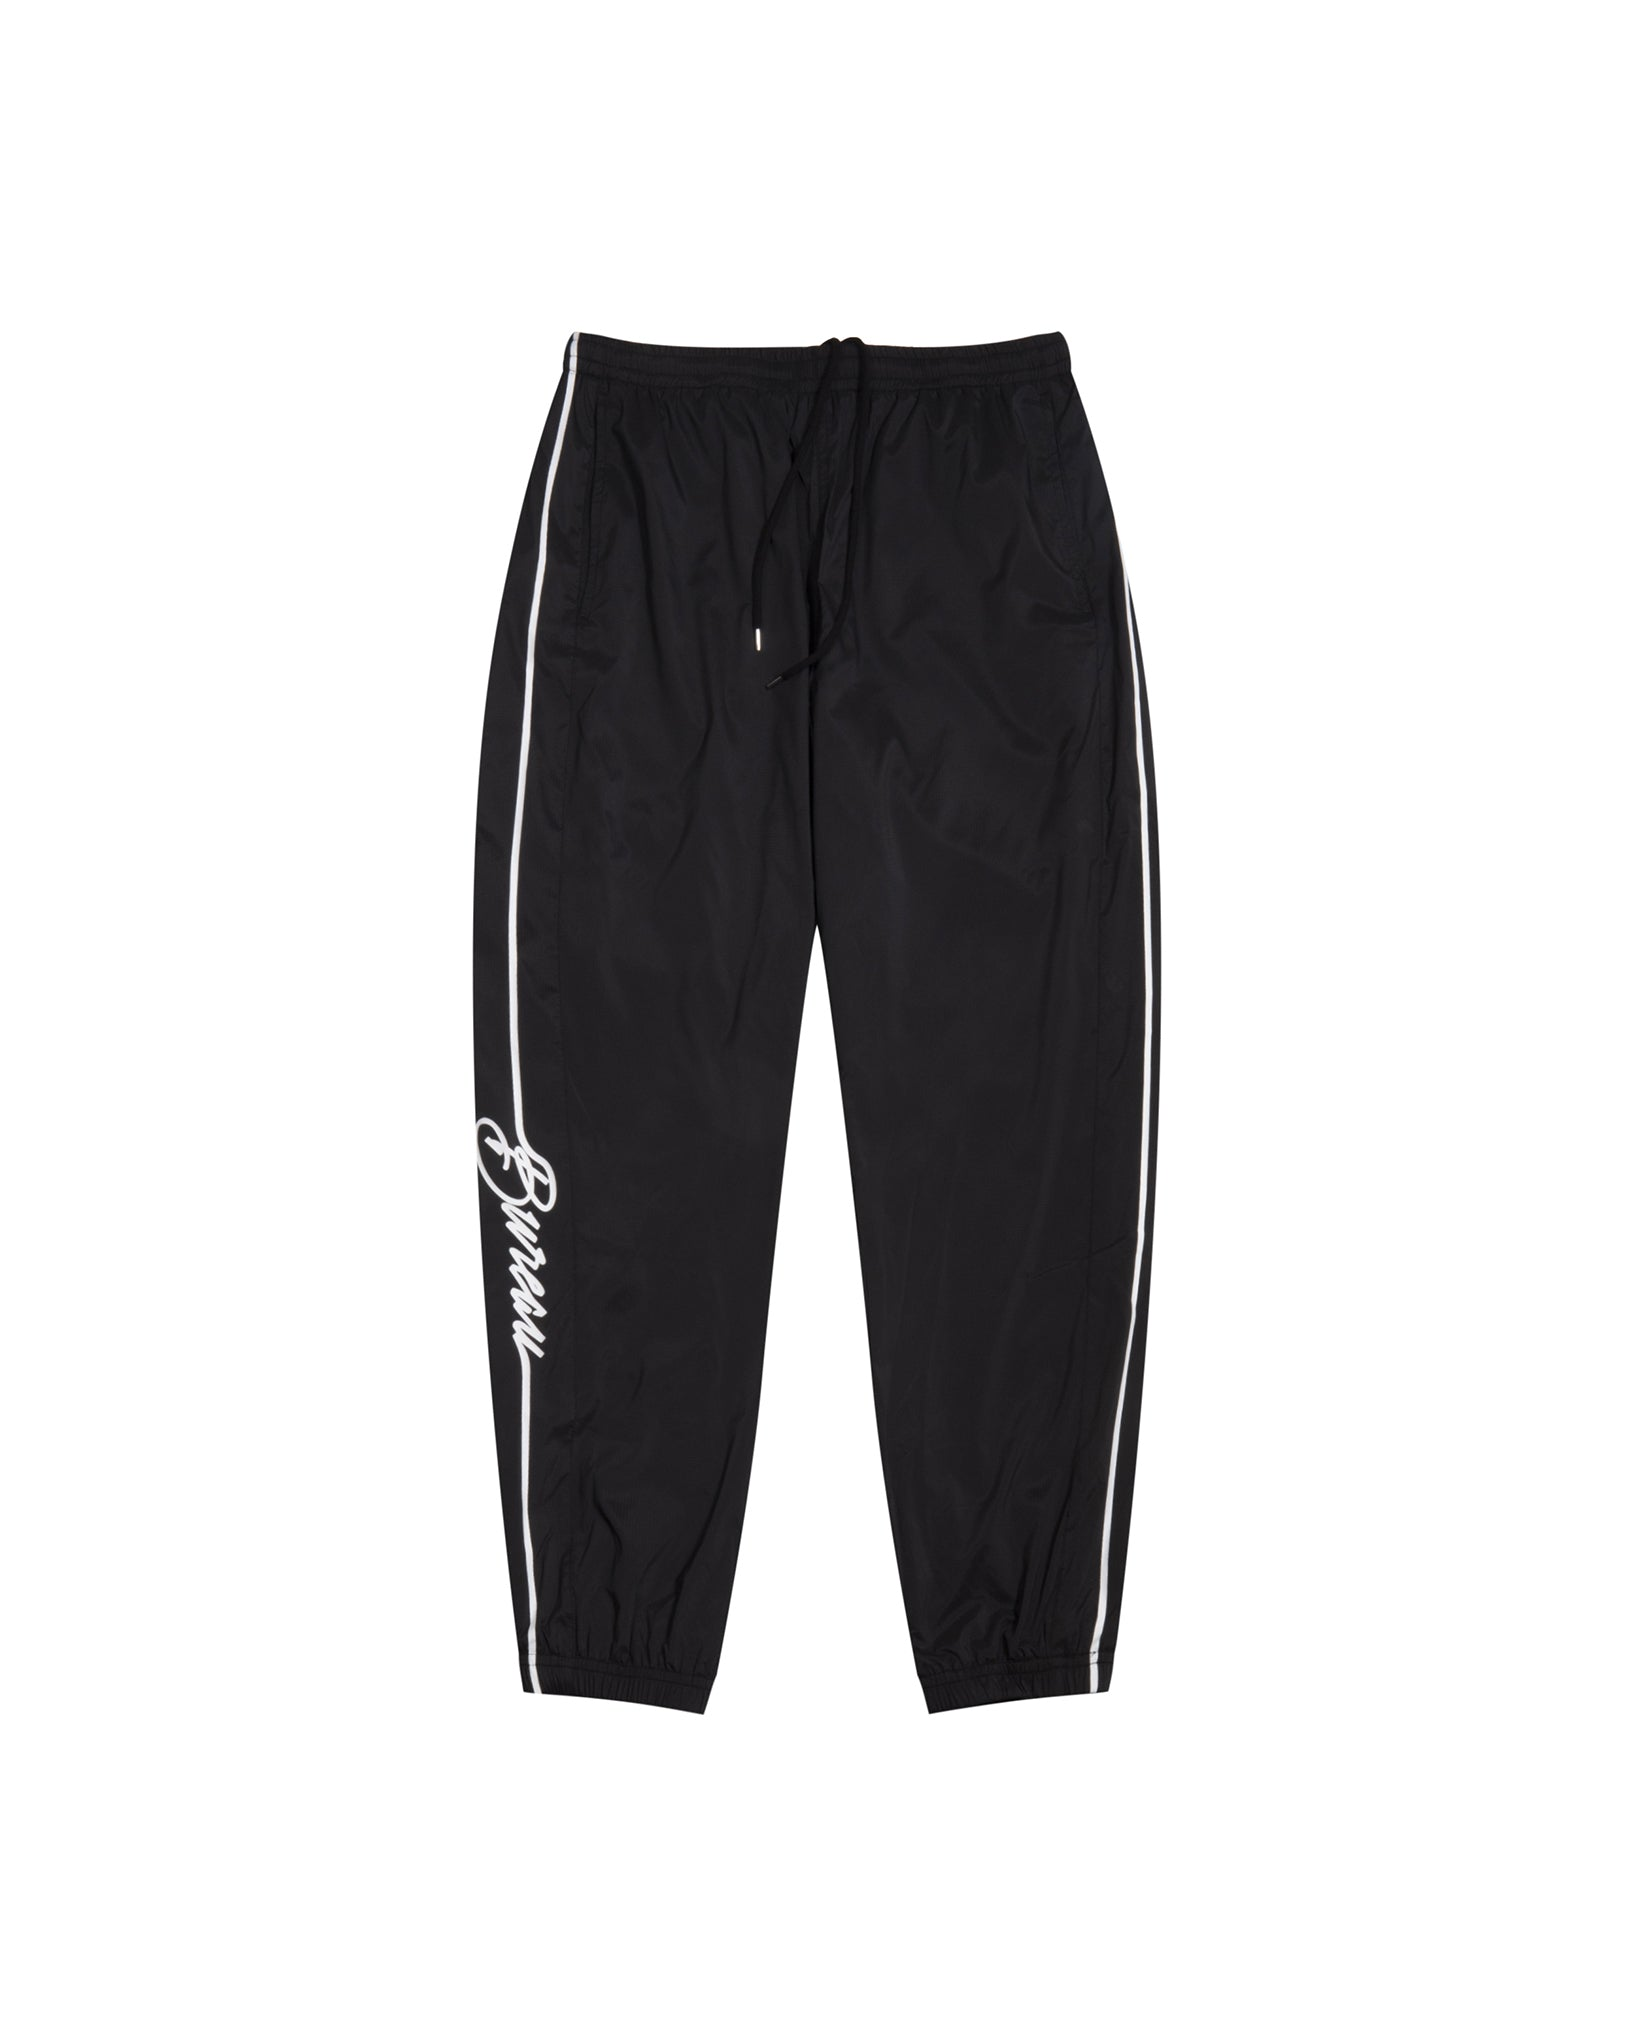 Black Men's Track Pants